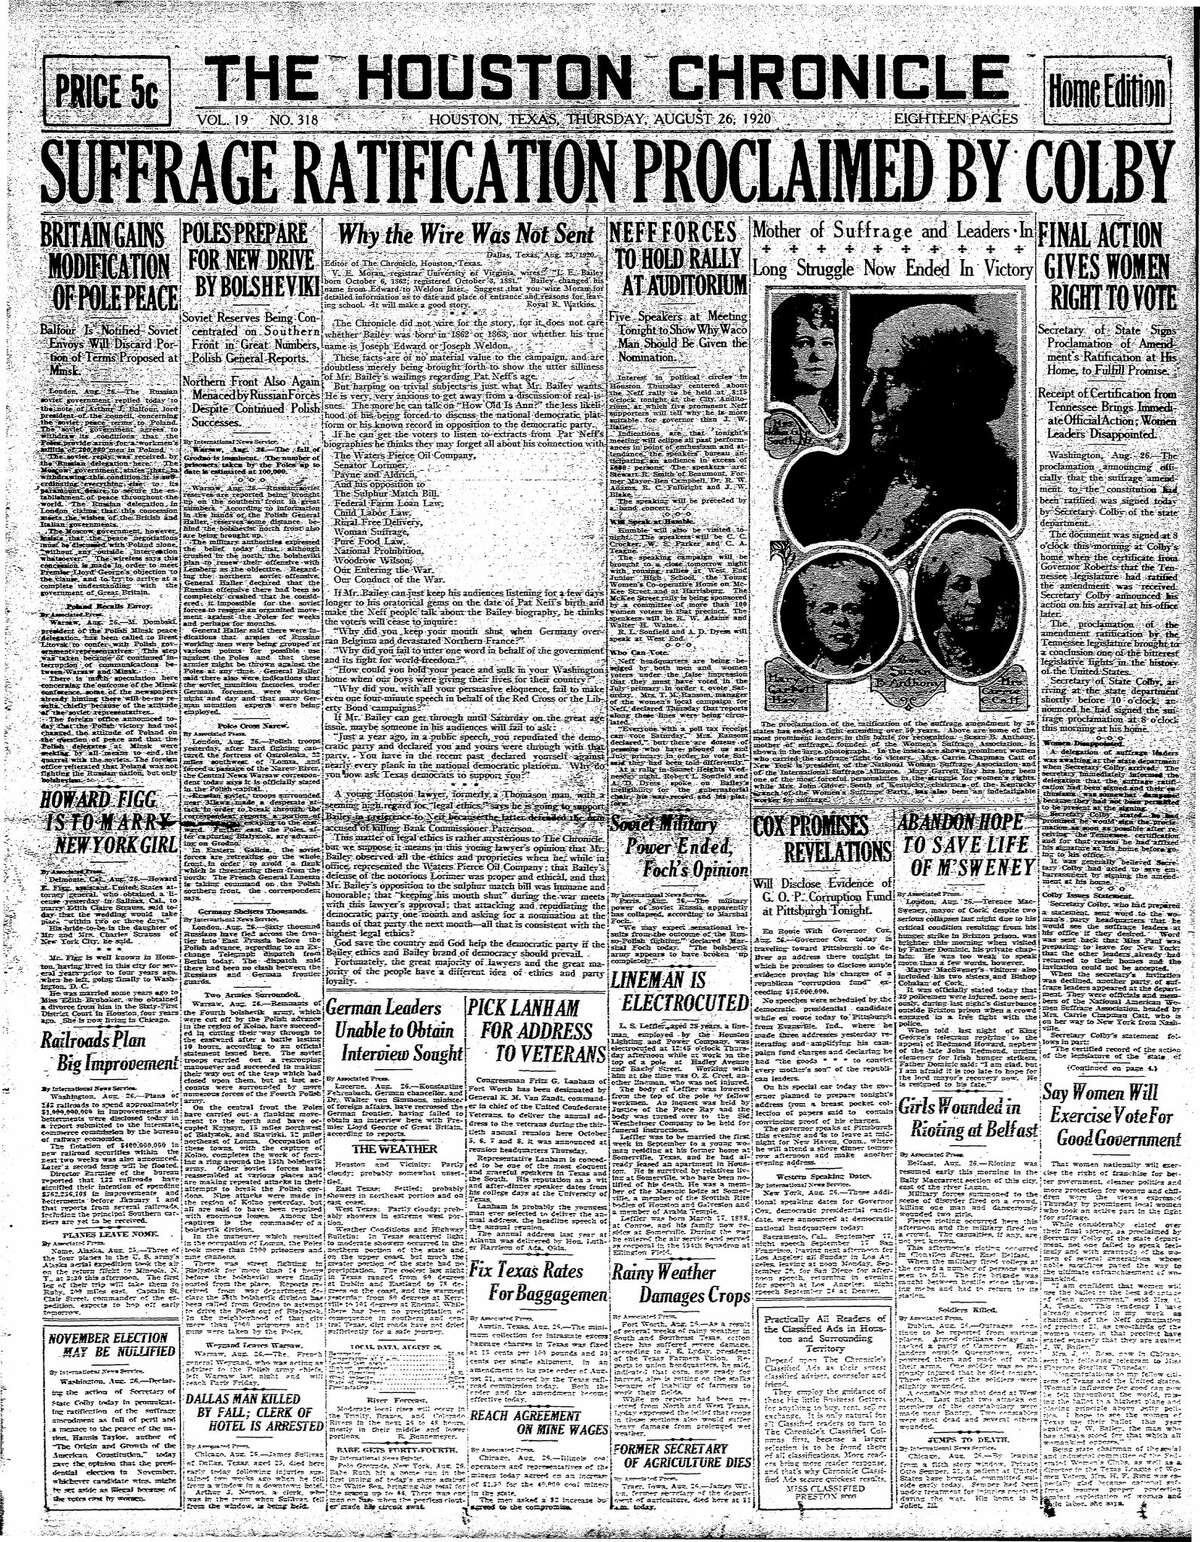 Houston Chronicle front page from Aug. 26, 1920.